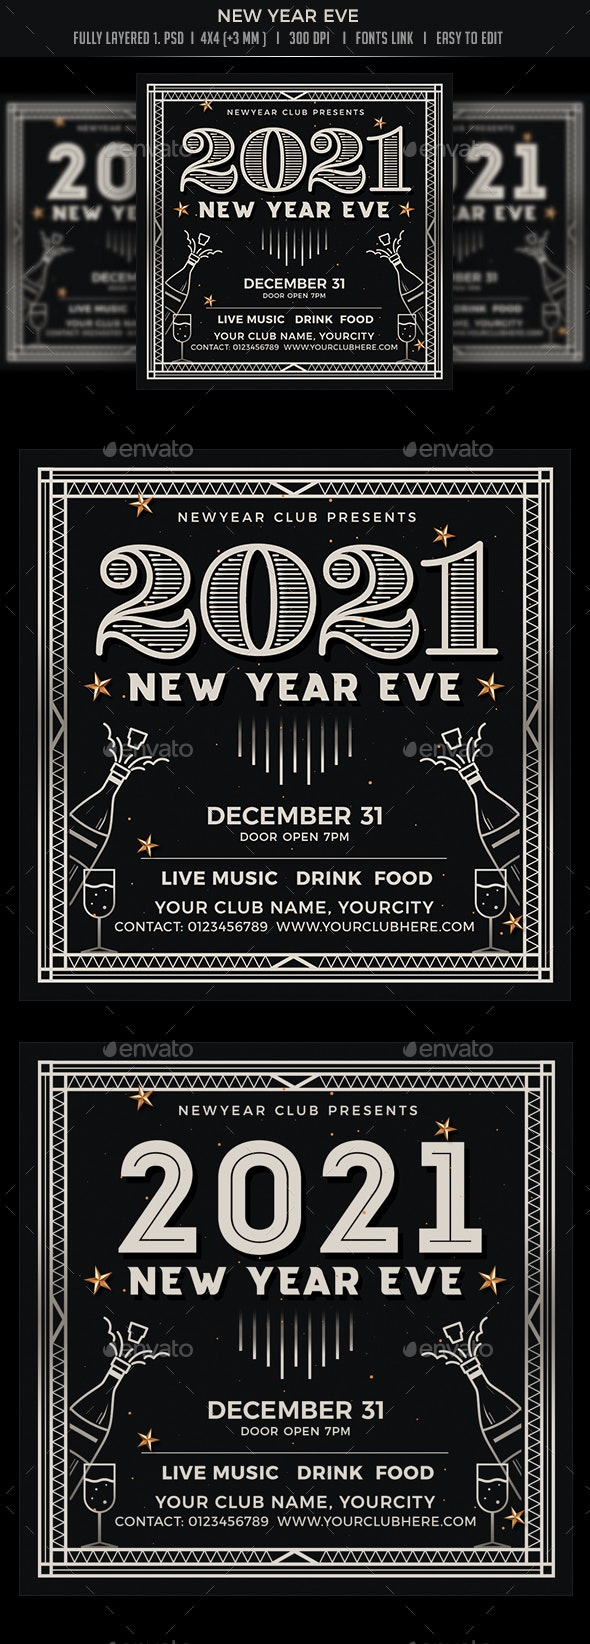 New Year Eve - Events Flyers